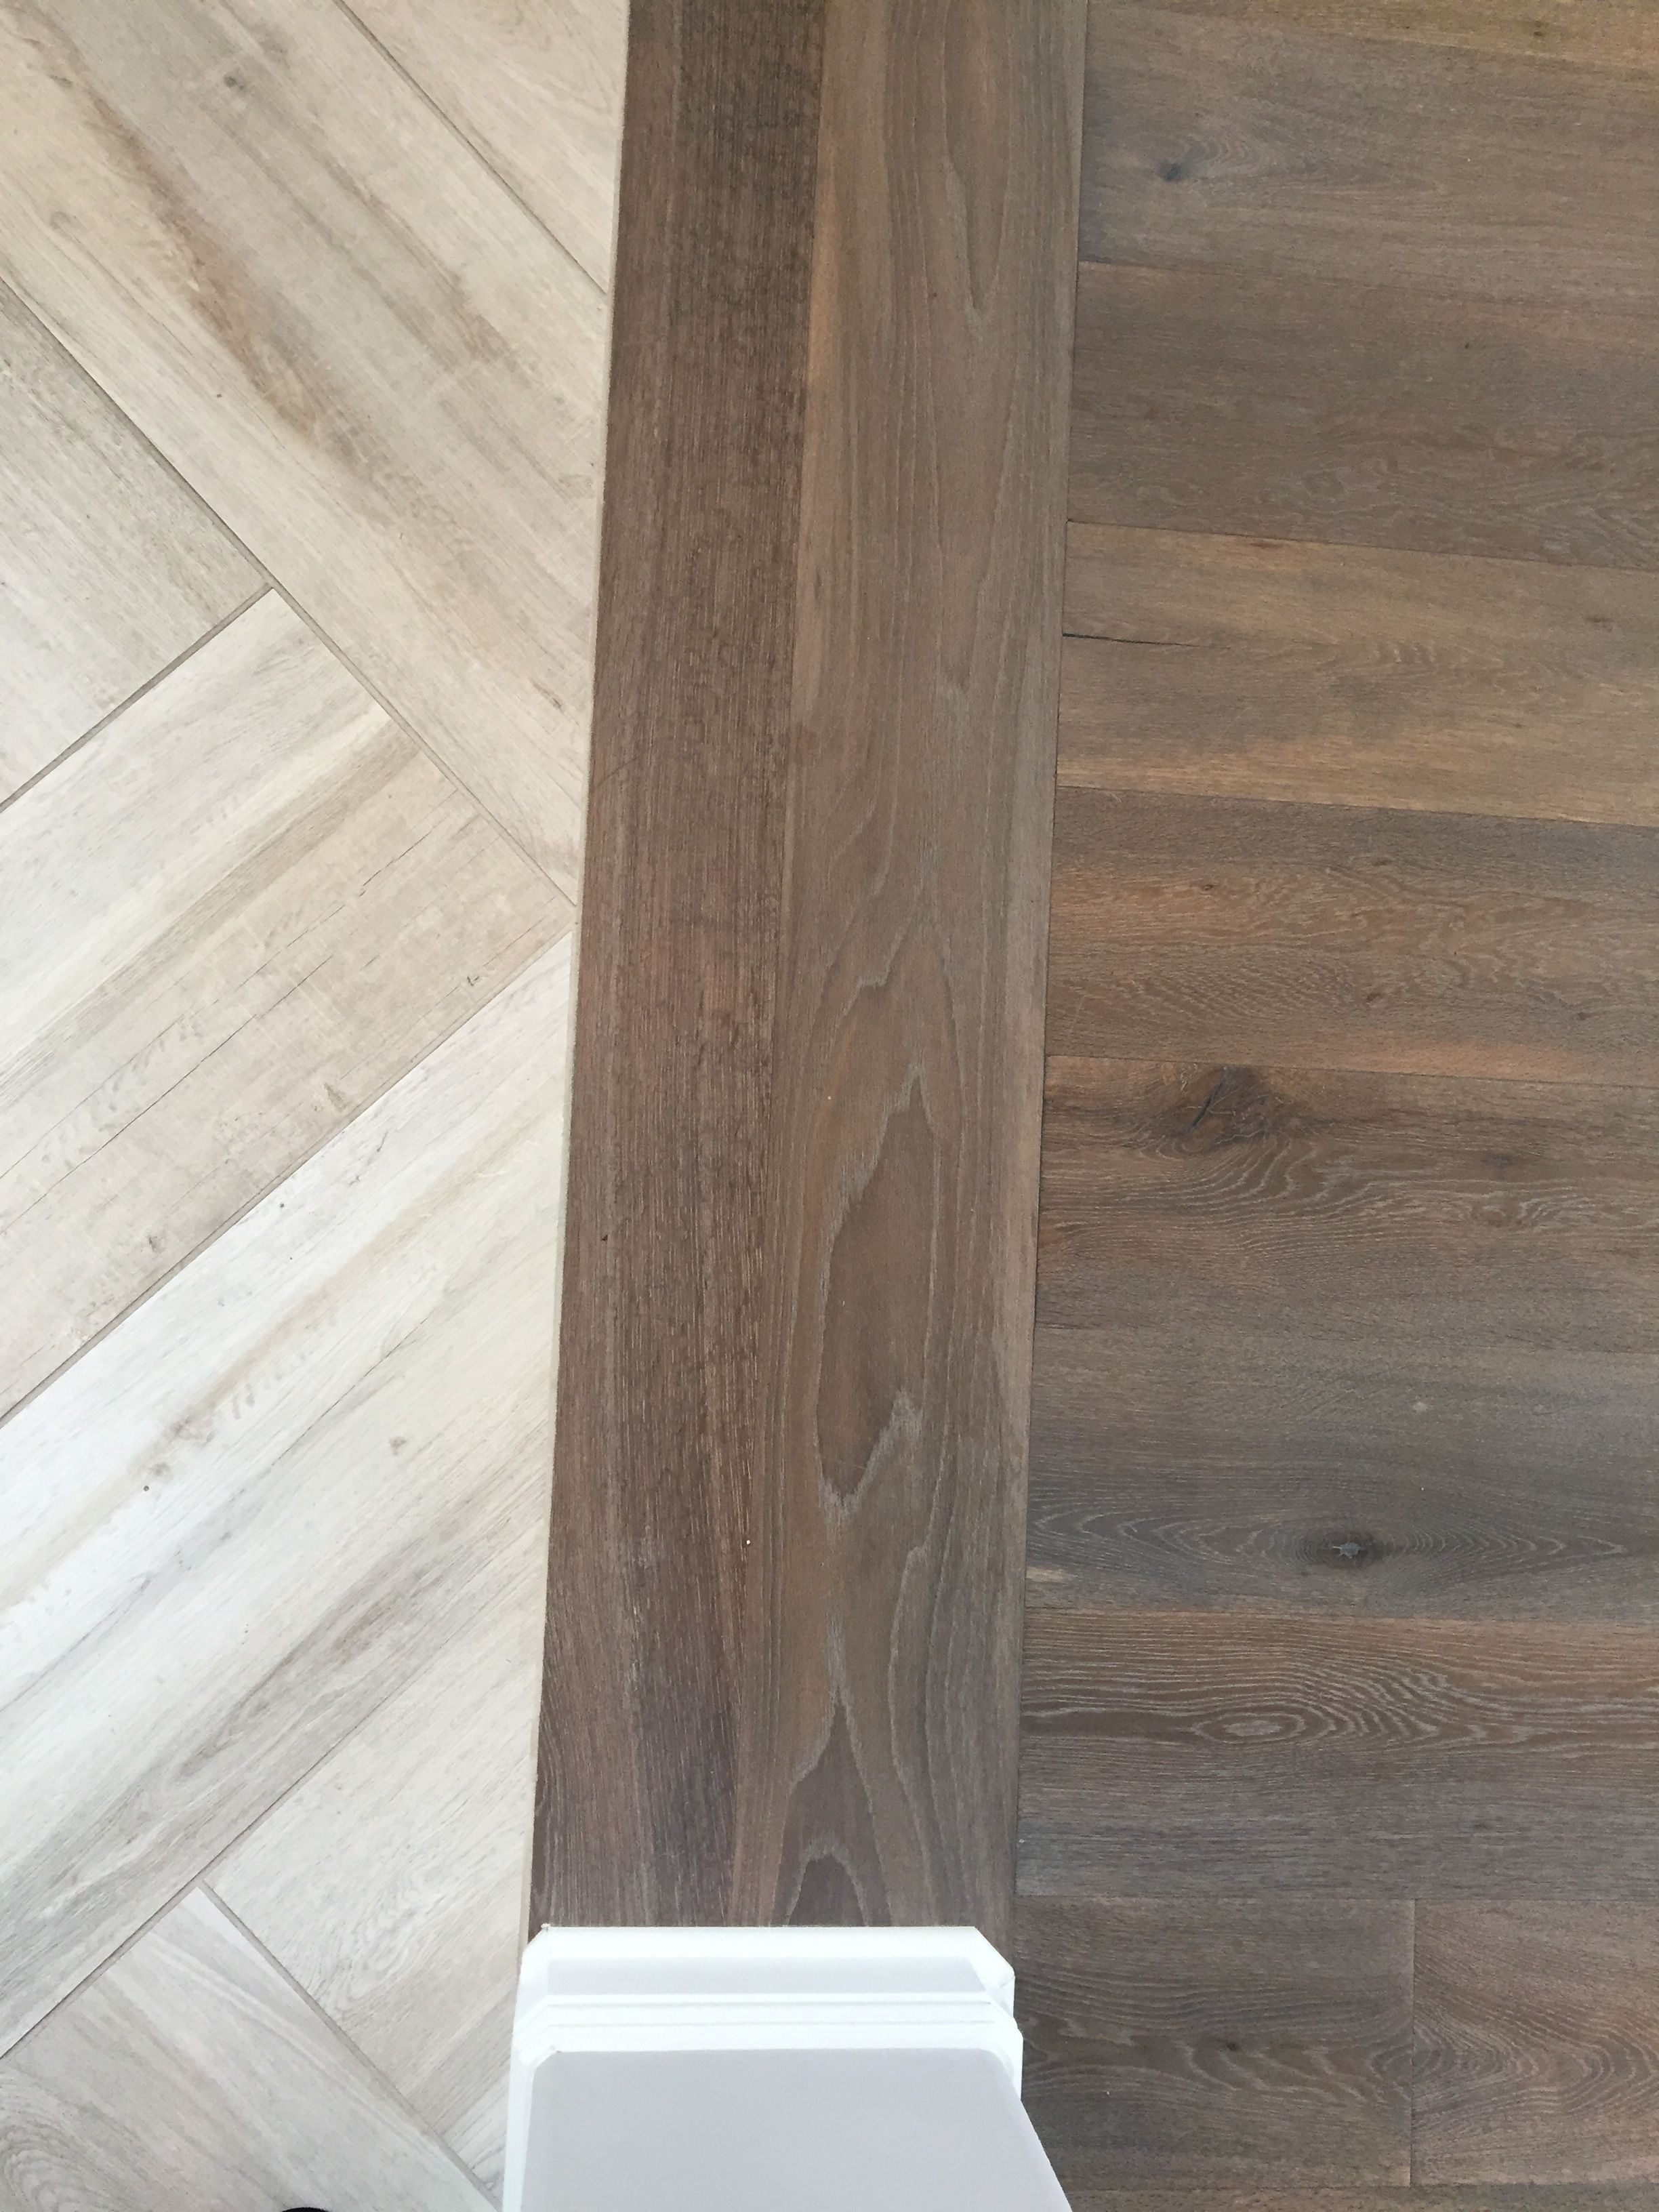 laying hardwood floors direction of floor transition laminate to herringbone tile pattern model regarding floor transition laminate to herringbone tile pattern herringbone tile pattern herringbone wood floor